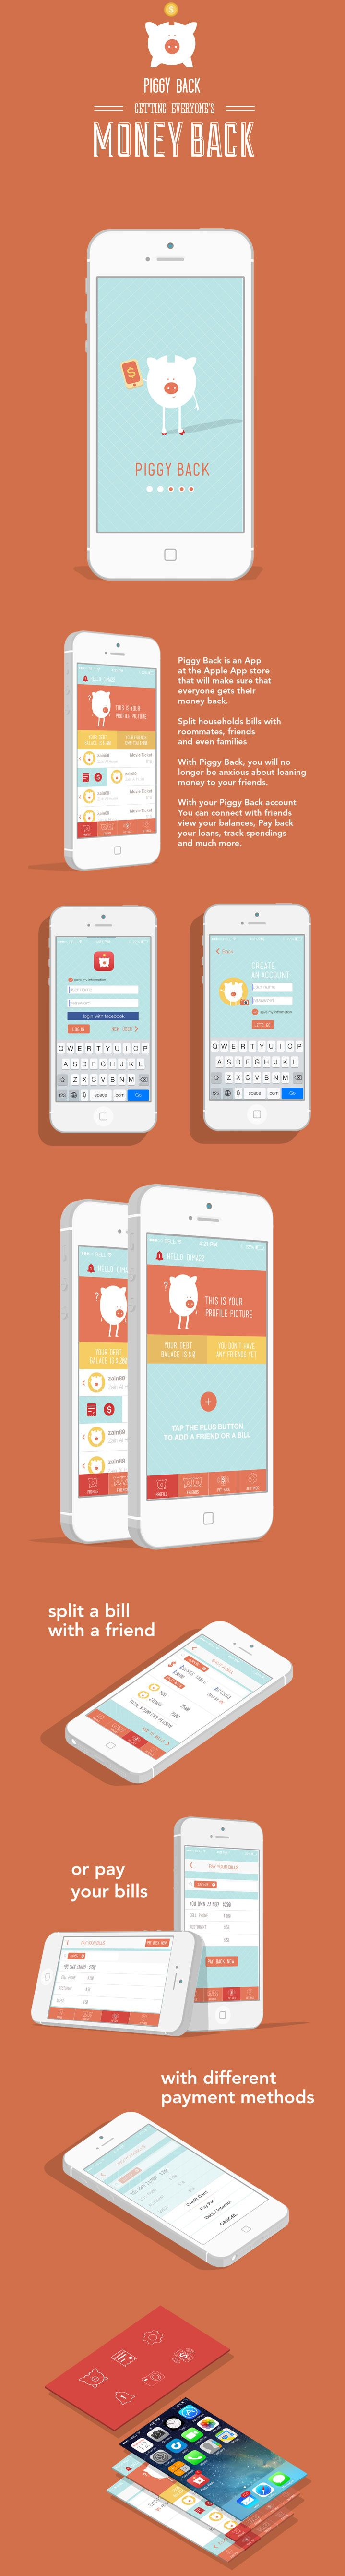 Piggy Back App | Keeping your finances organized